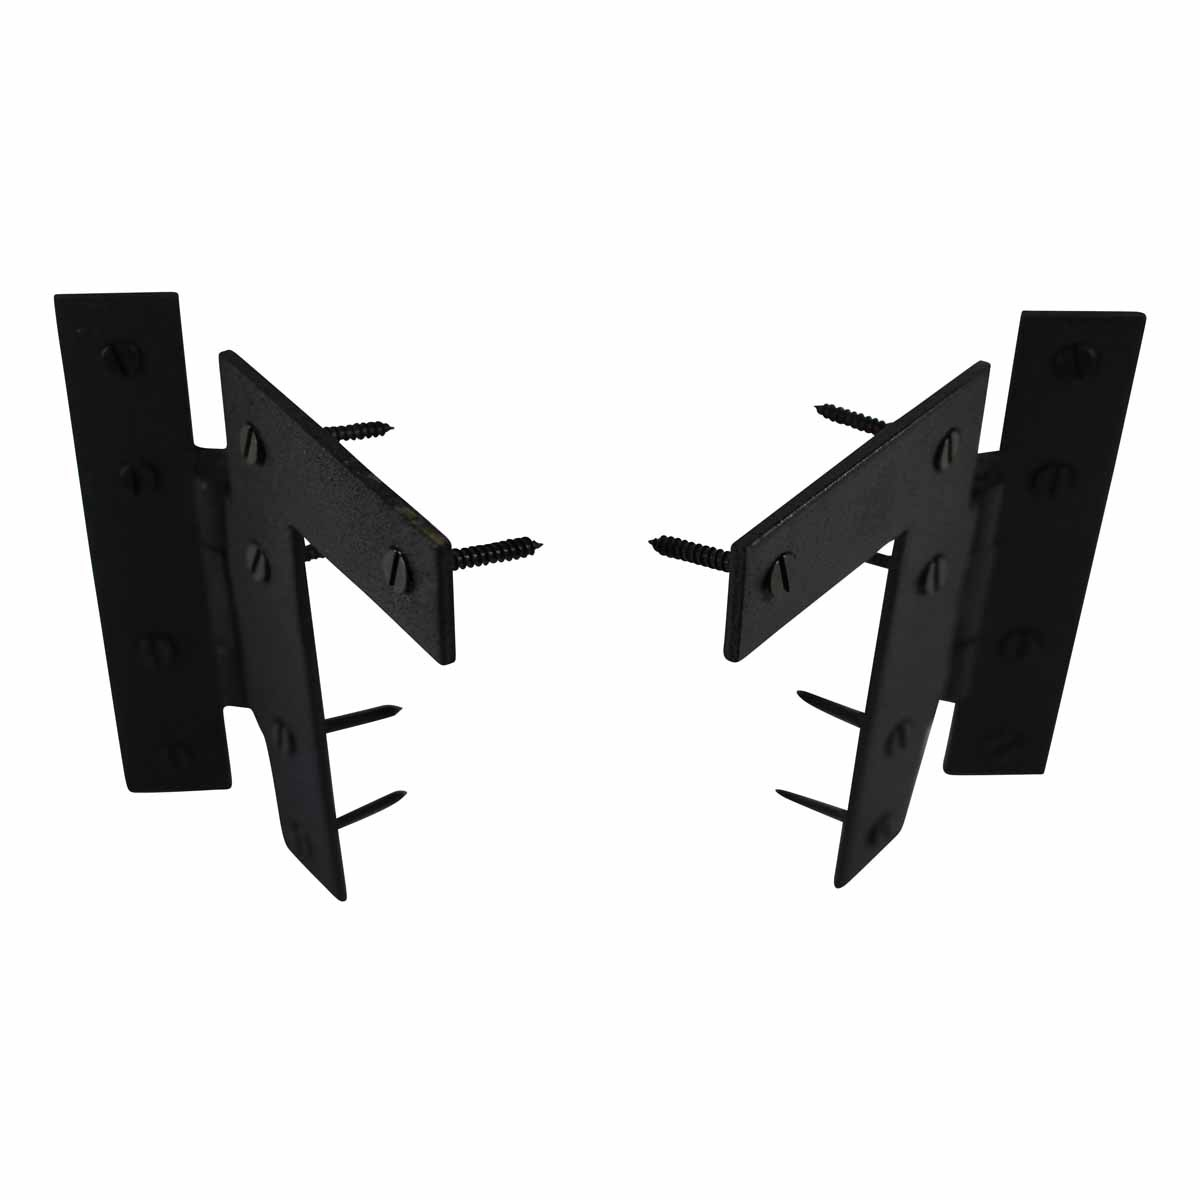 Pair Offset HL Cabinet Hinge Wrought Iron 4 12 H metal classic traditional vintage diy antique hardware victorian old world garden gate armoire rustic ornamental